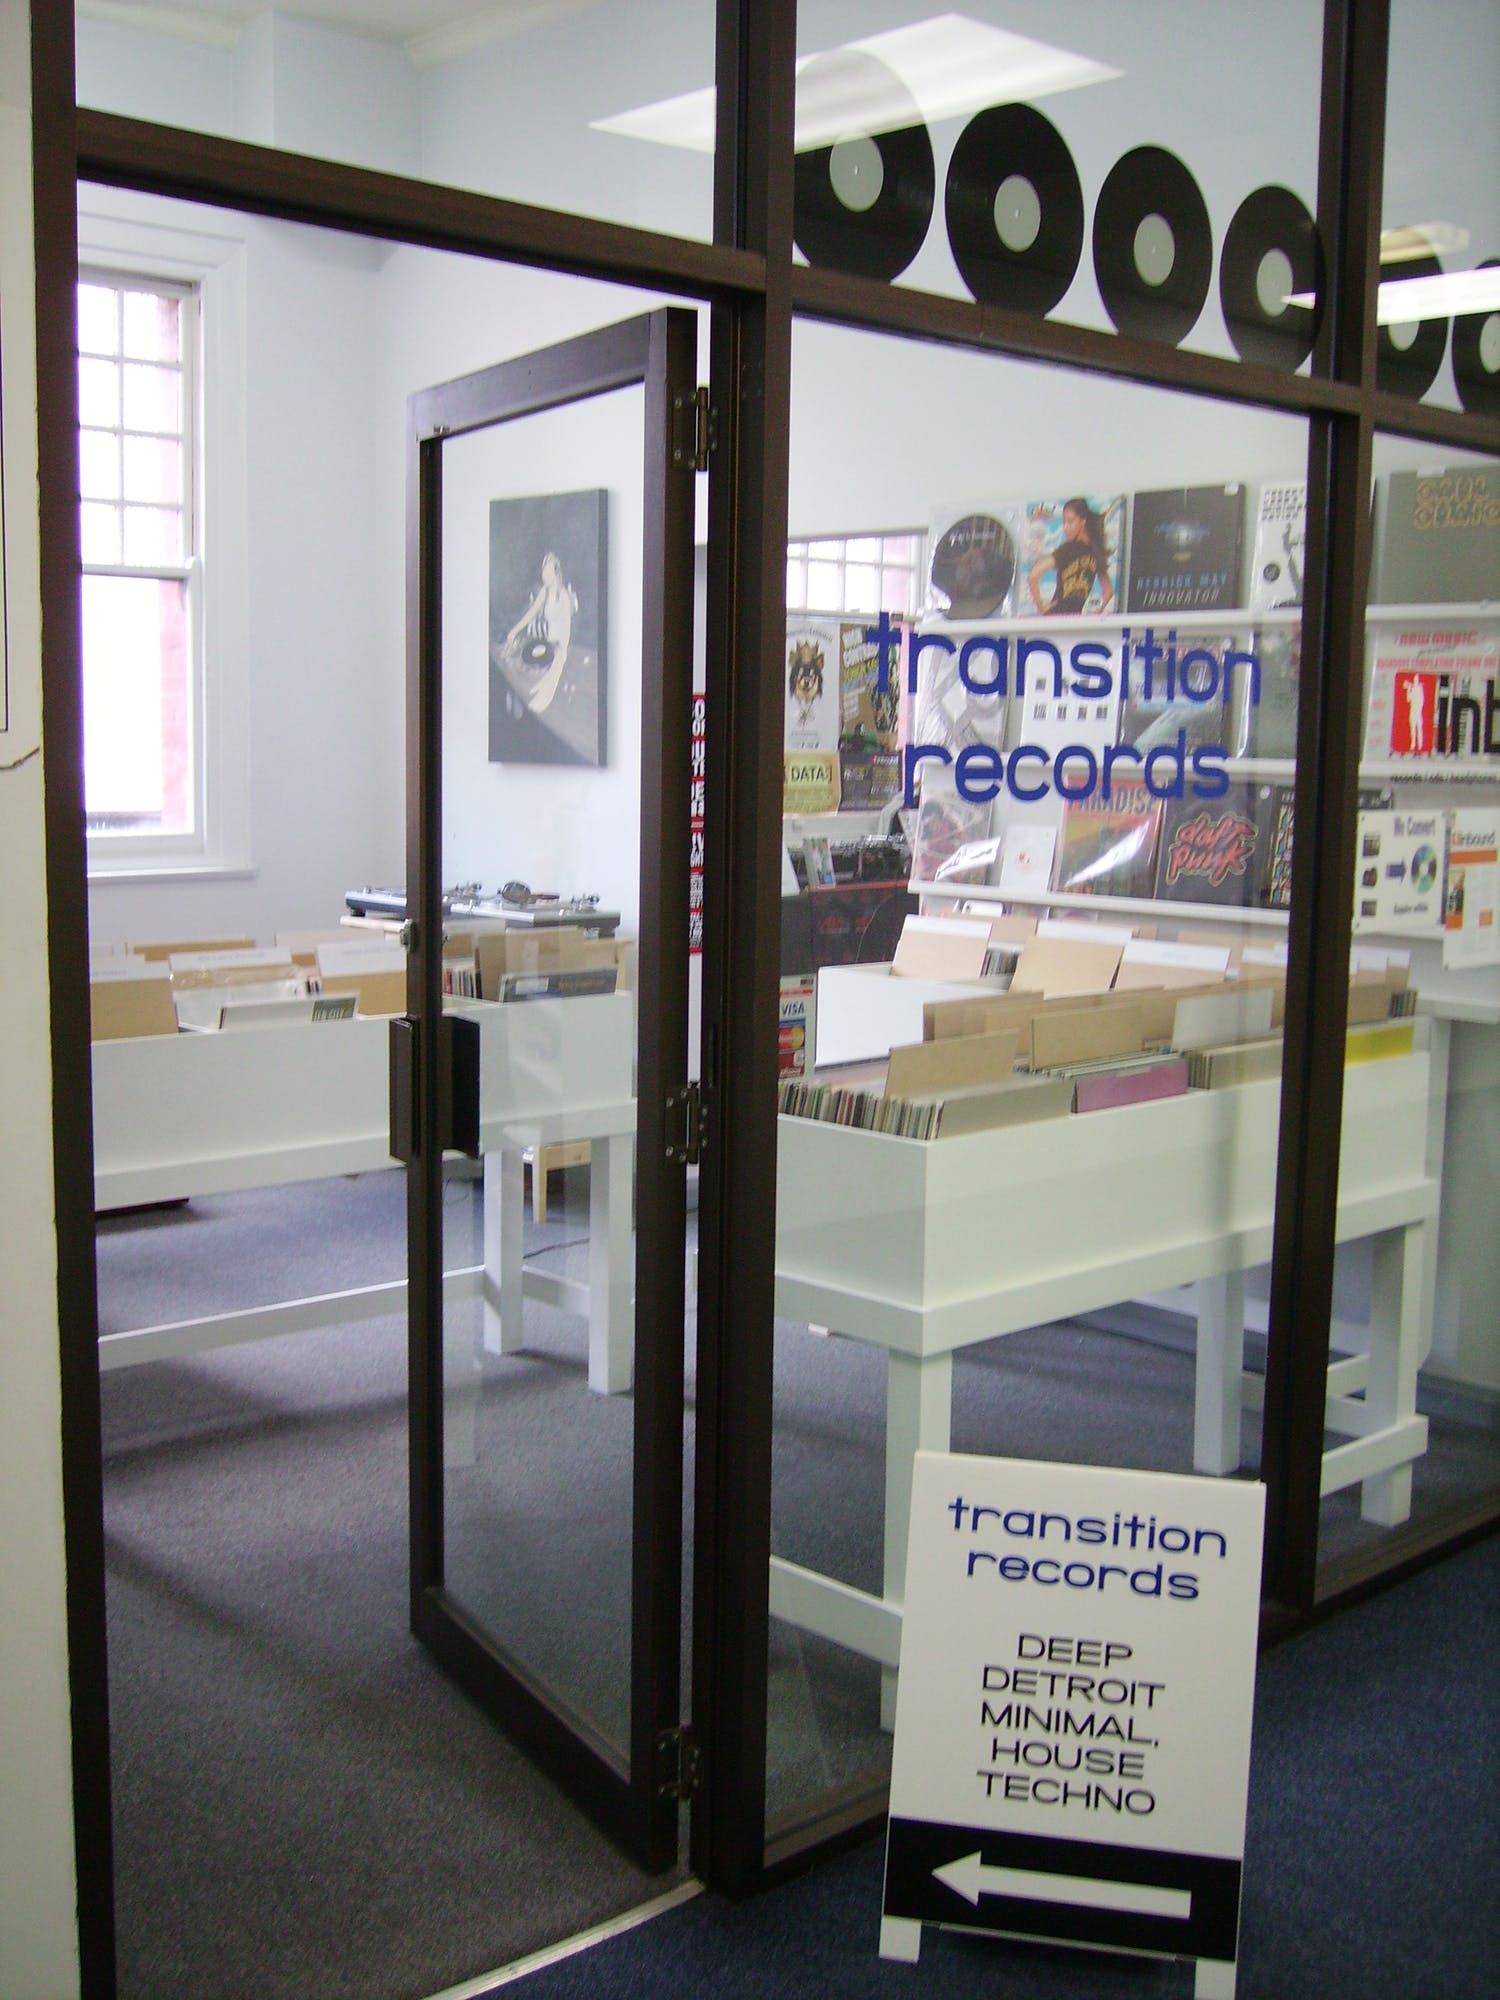 Transition Records - Record Store Image